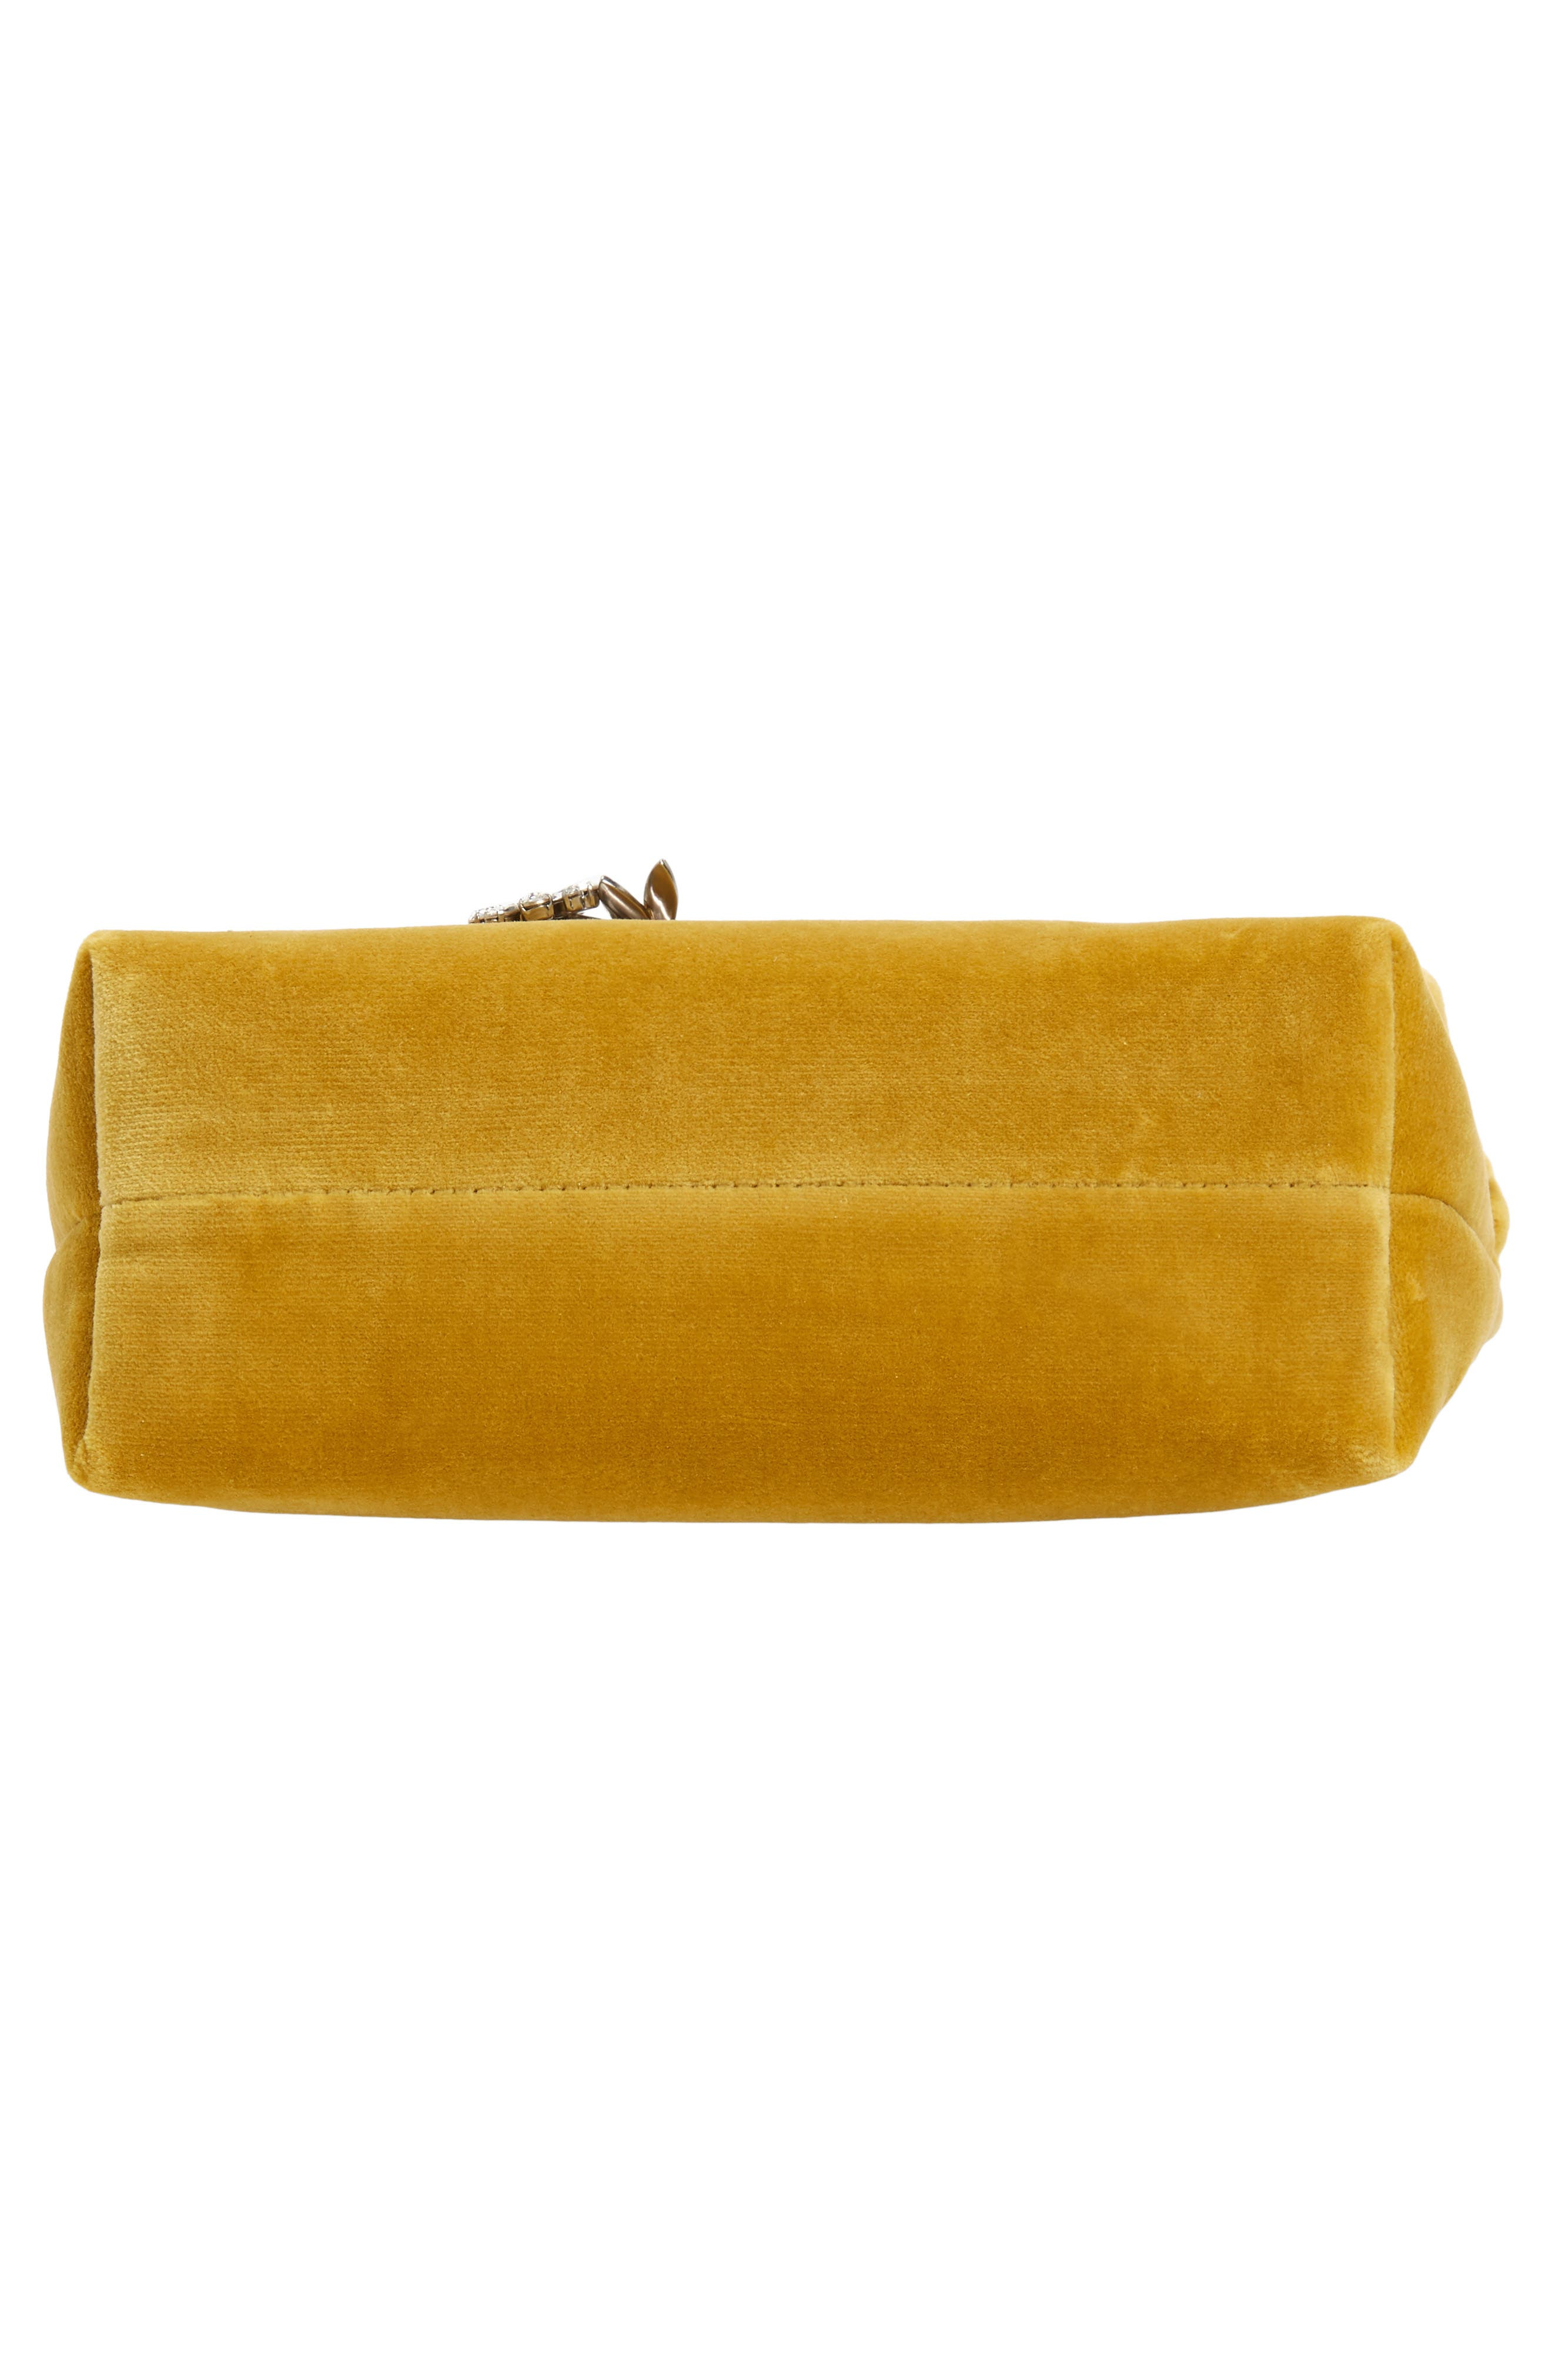 Small Safety Pin Clutch,                             Alternate thumbnail 6, color,                             LARCH YELLOW